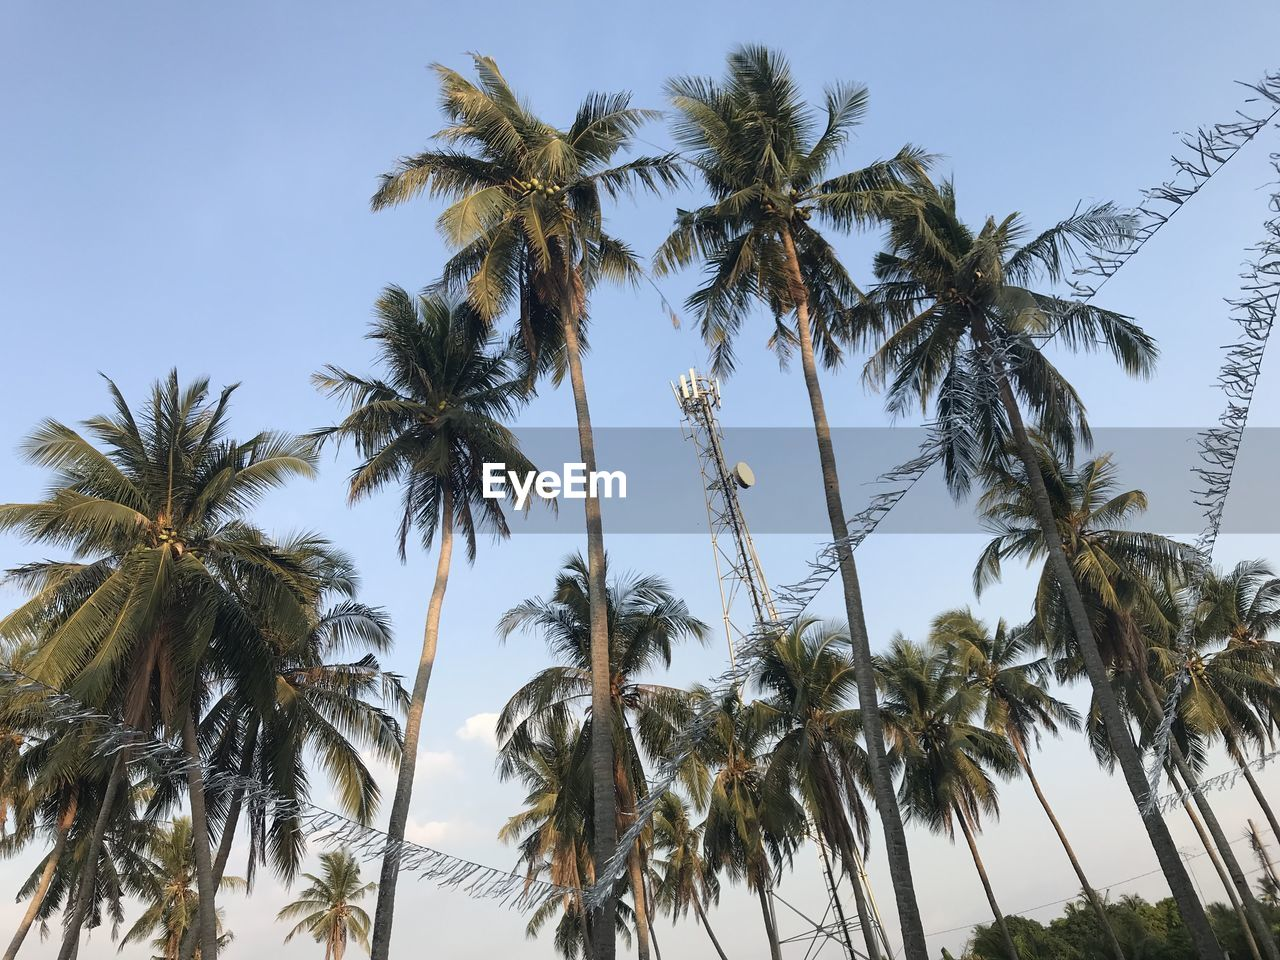 palm tree, tropical climate, sky, tree, plant, low angle view, tall - high, coconut palm tree, growth, tree trunk, no people, trunk, clear sky, nature, beauty in nature, tropical tree, tranquility, day, outdoors, scenics - nature, palm leaf